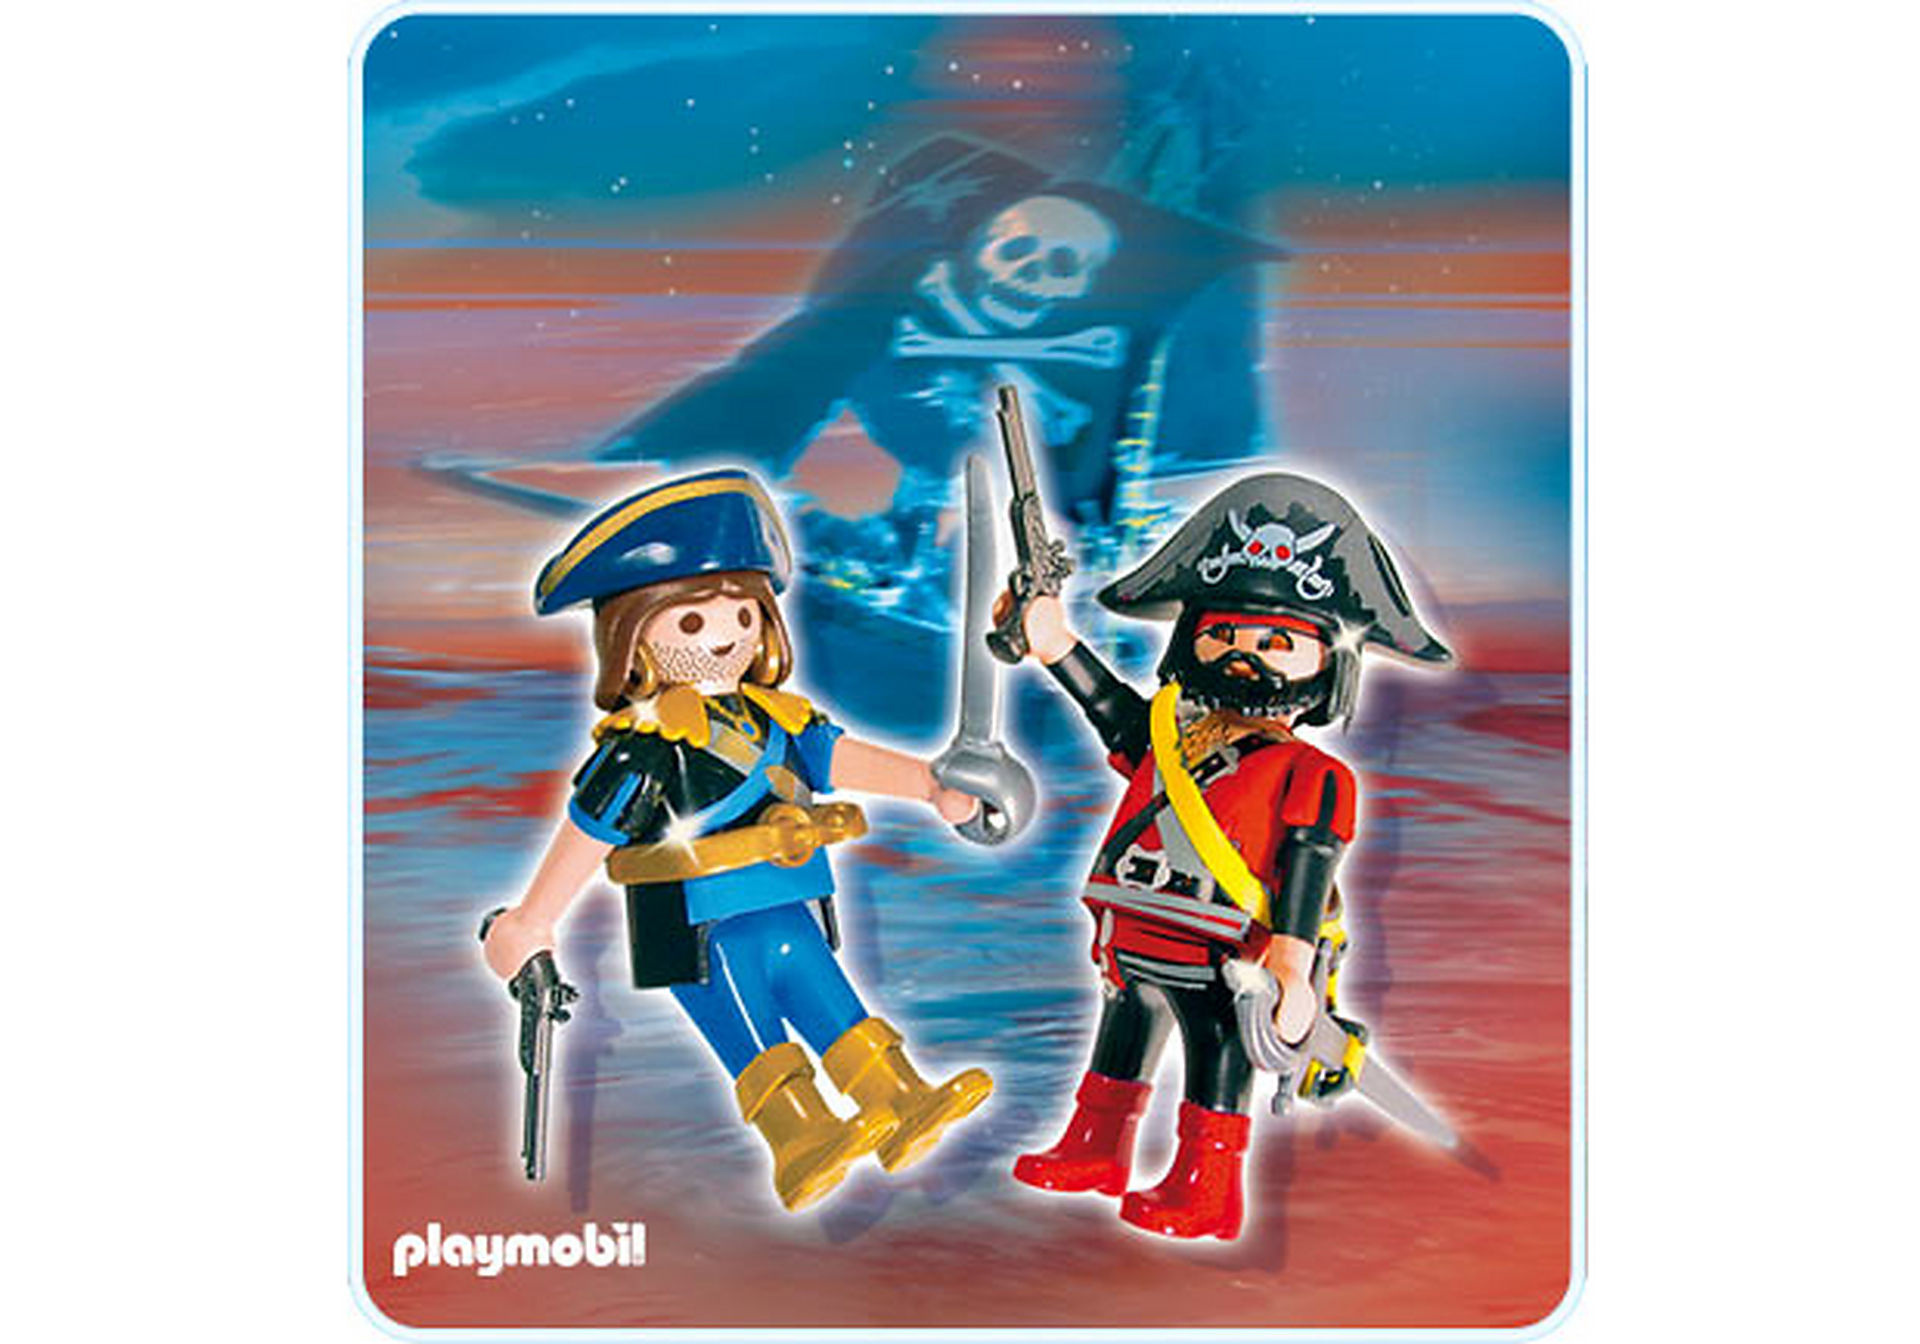 http://media.playmobil.com/i/playmobil/5814-A_product_detail/Pirat und Korsar